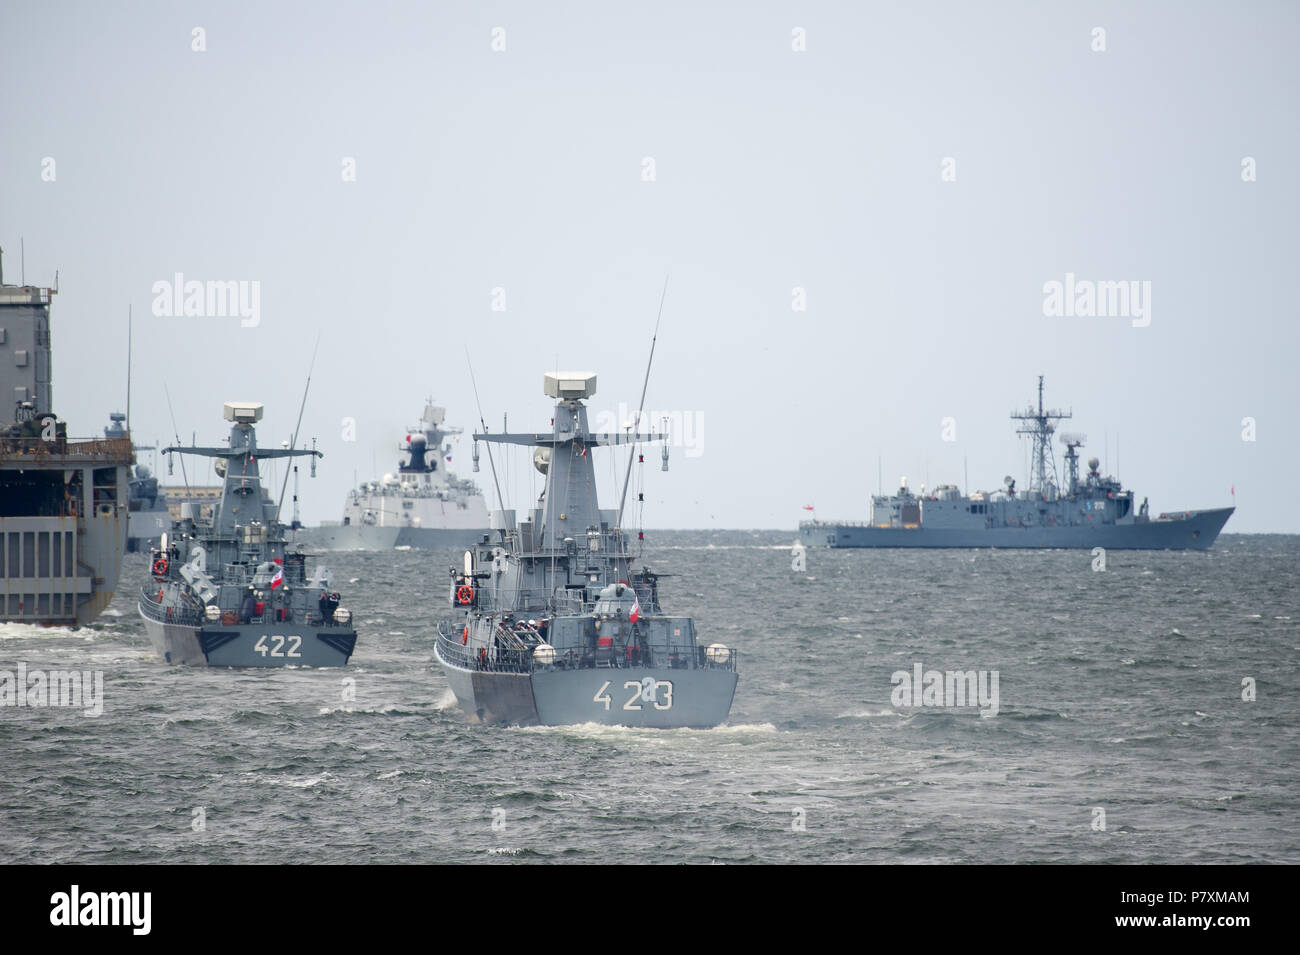 polish orkan class fast attack craft orp grom 423 and orp piorun